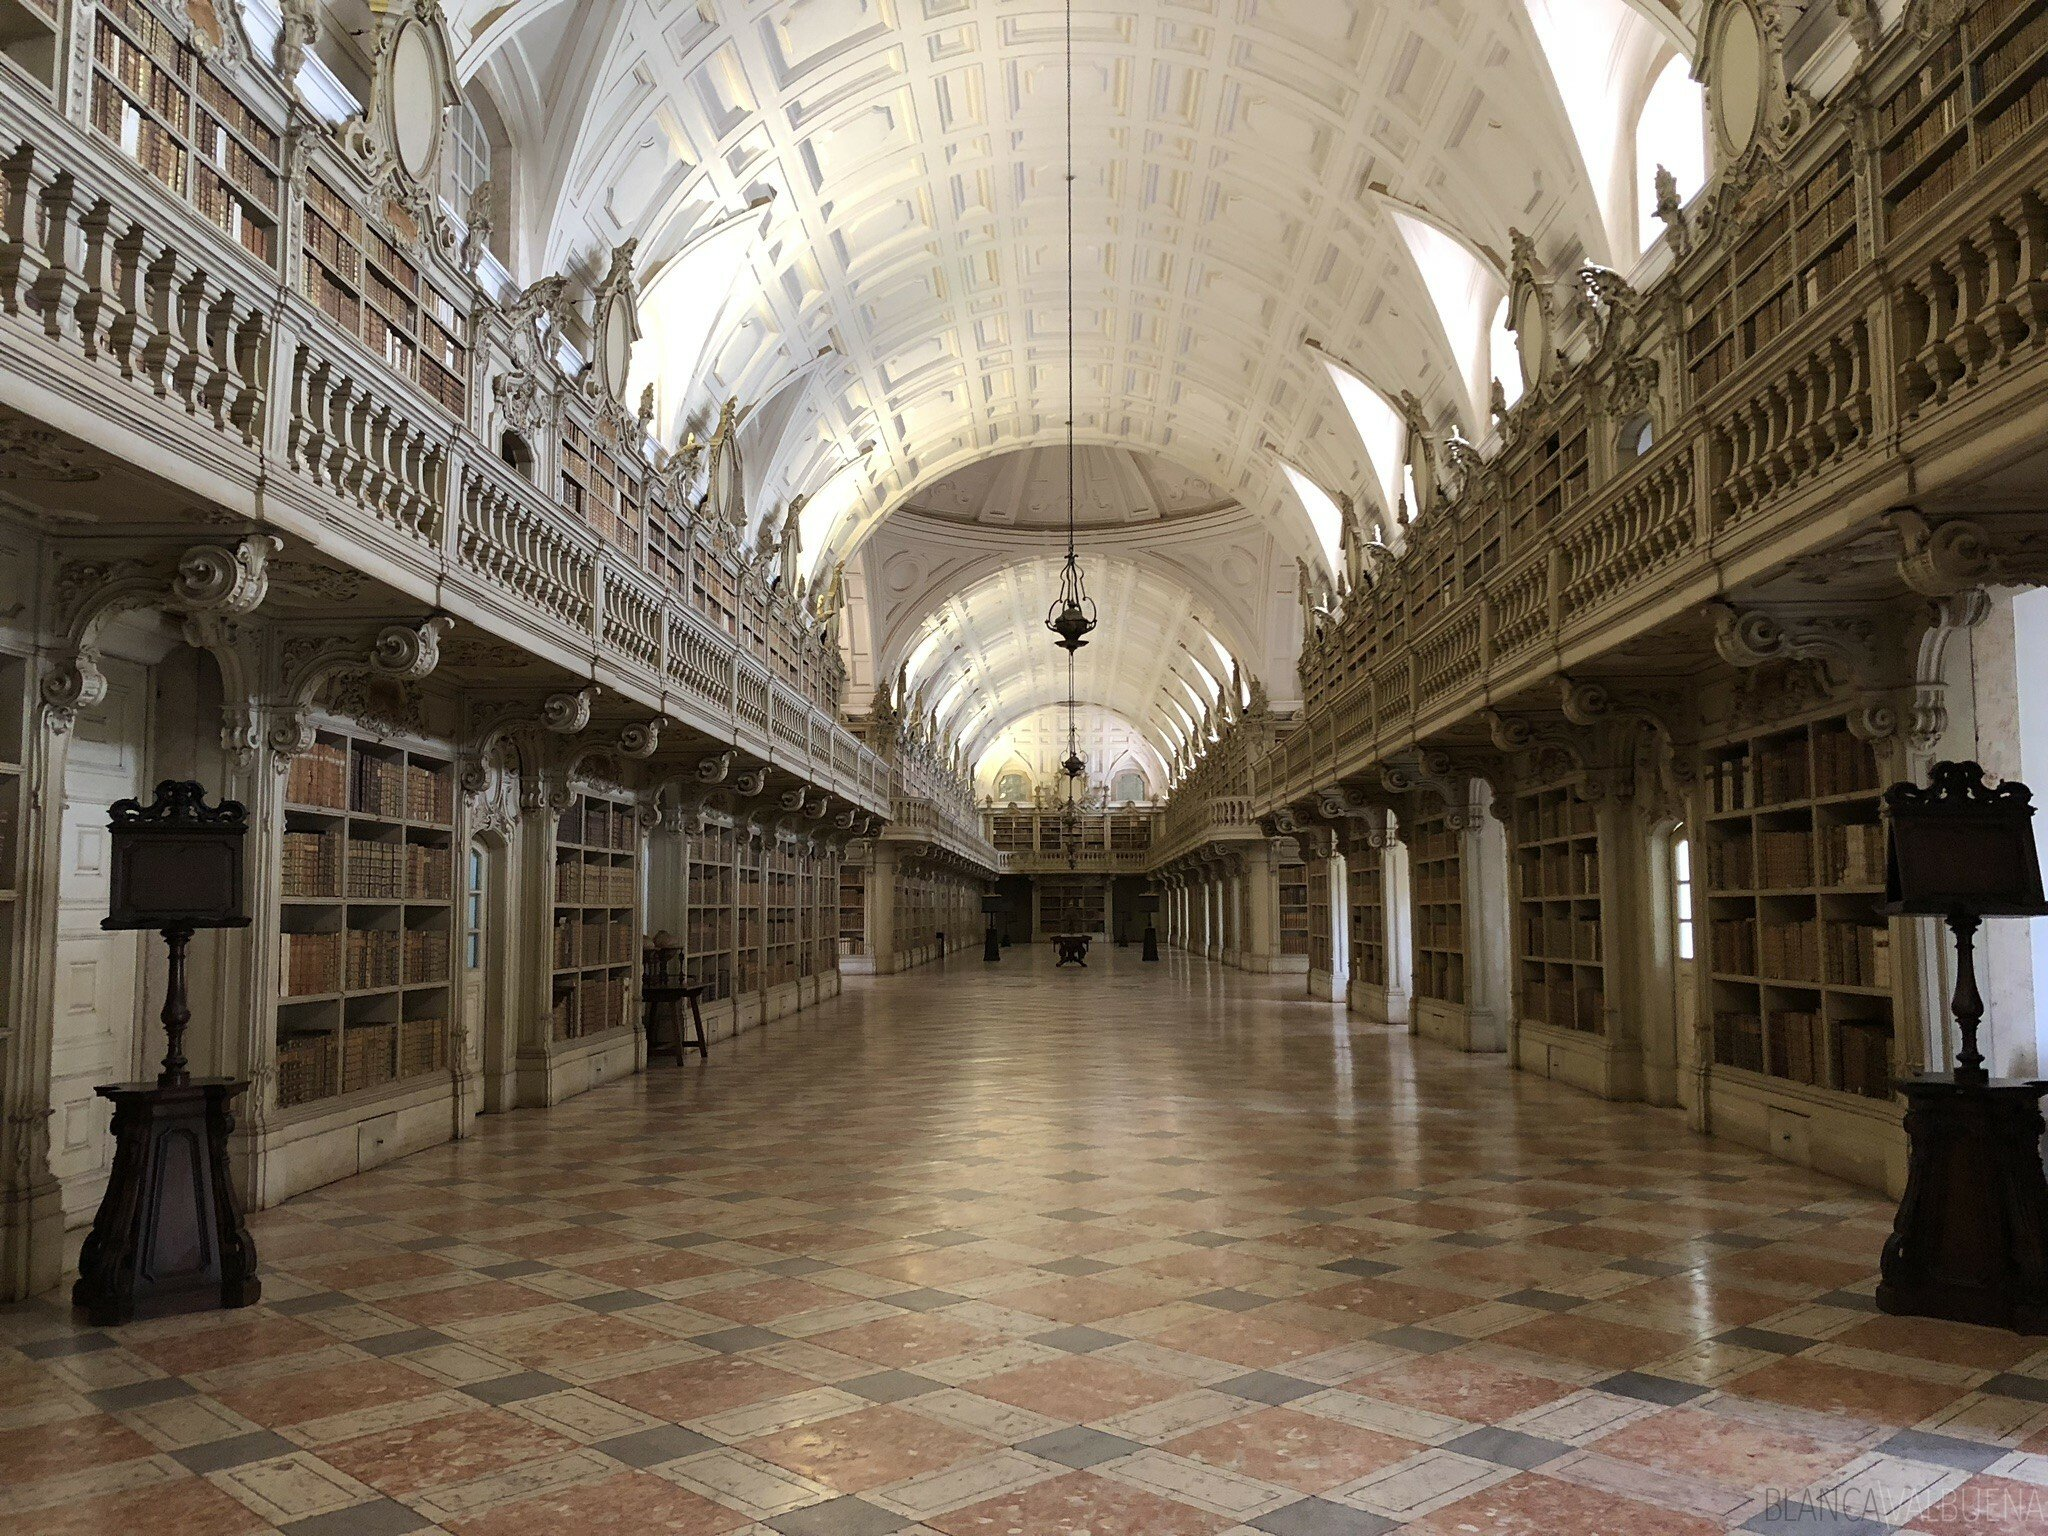 One of the largest libraries in Portugal is in Mafra